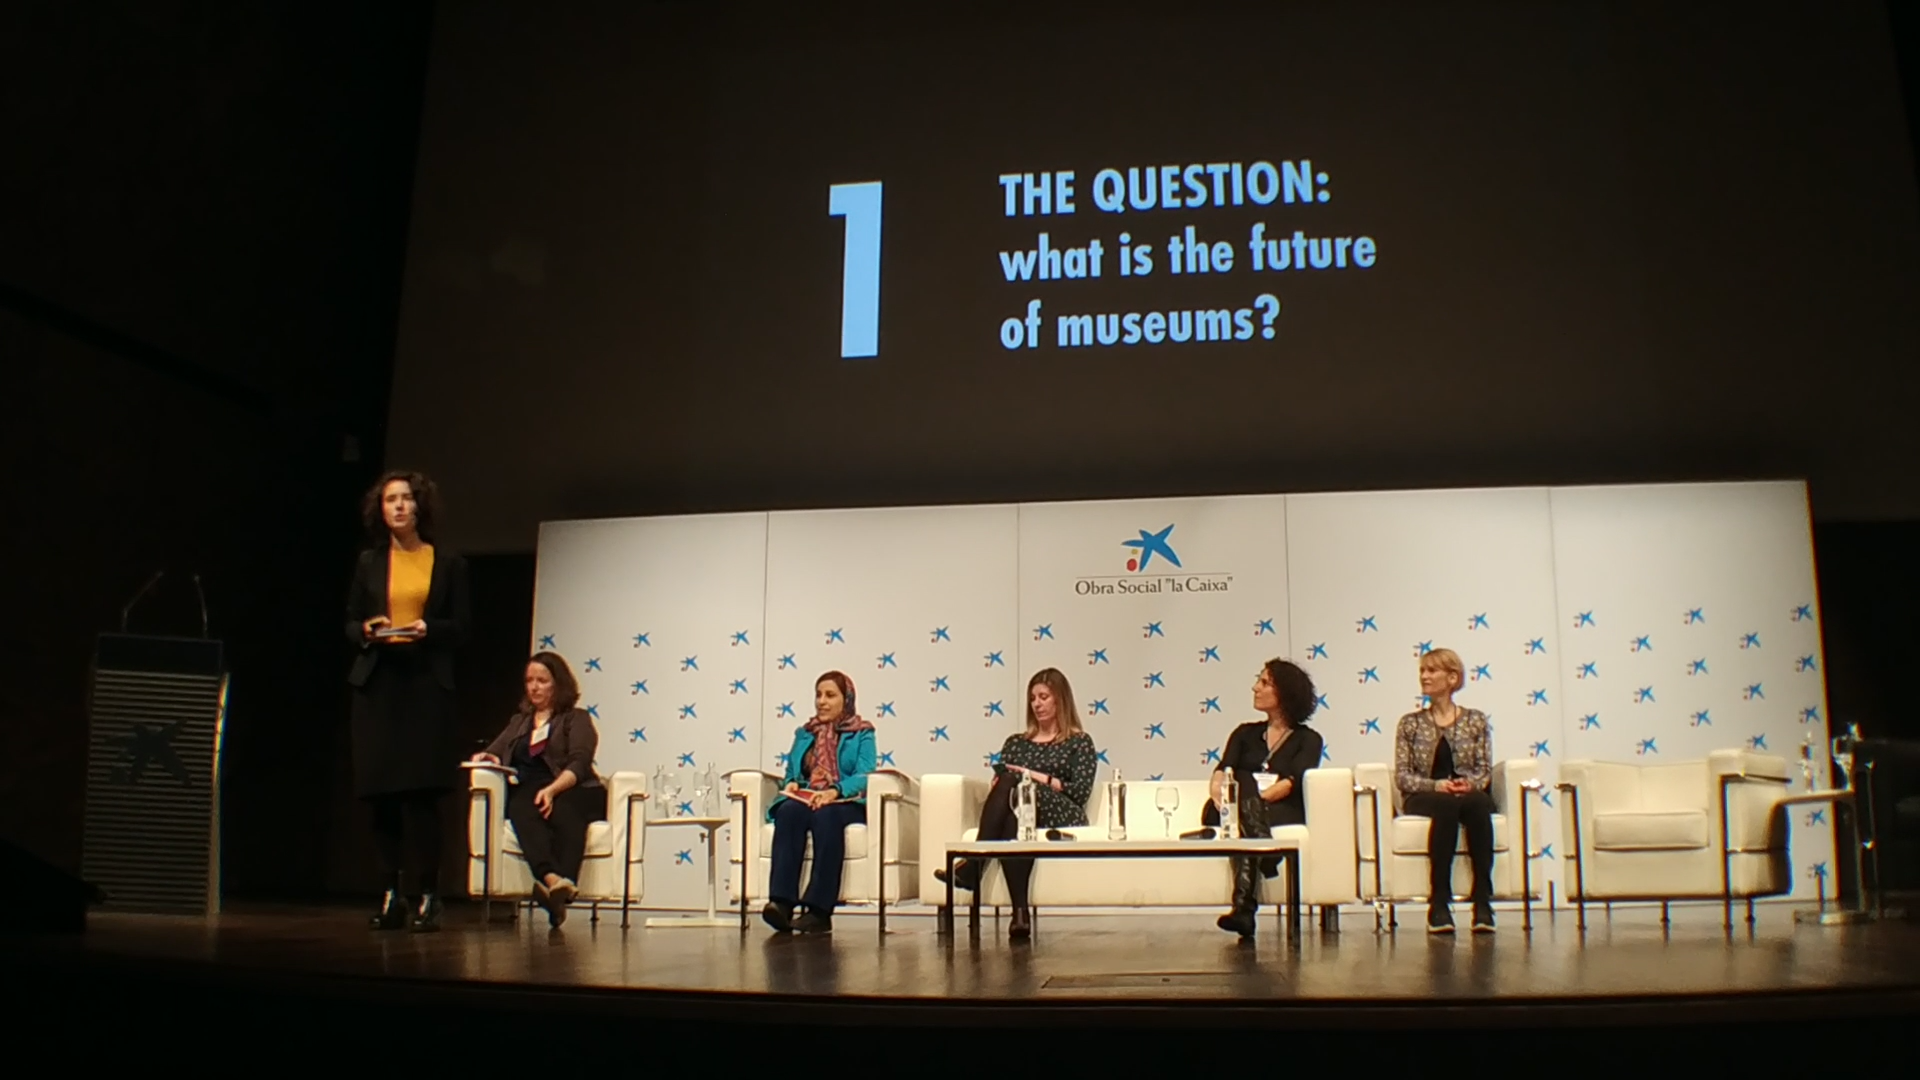 What is the future of museums?